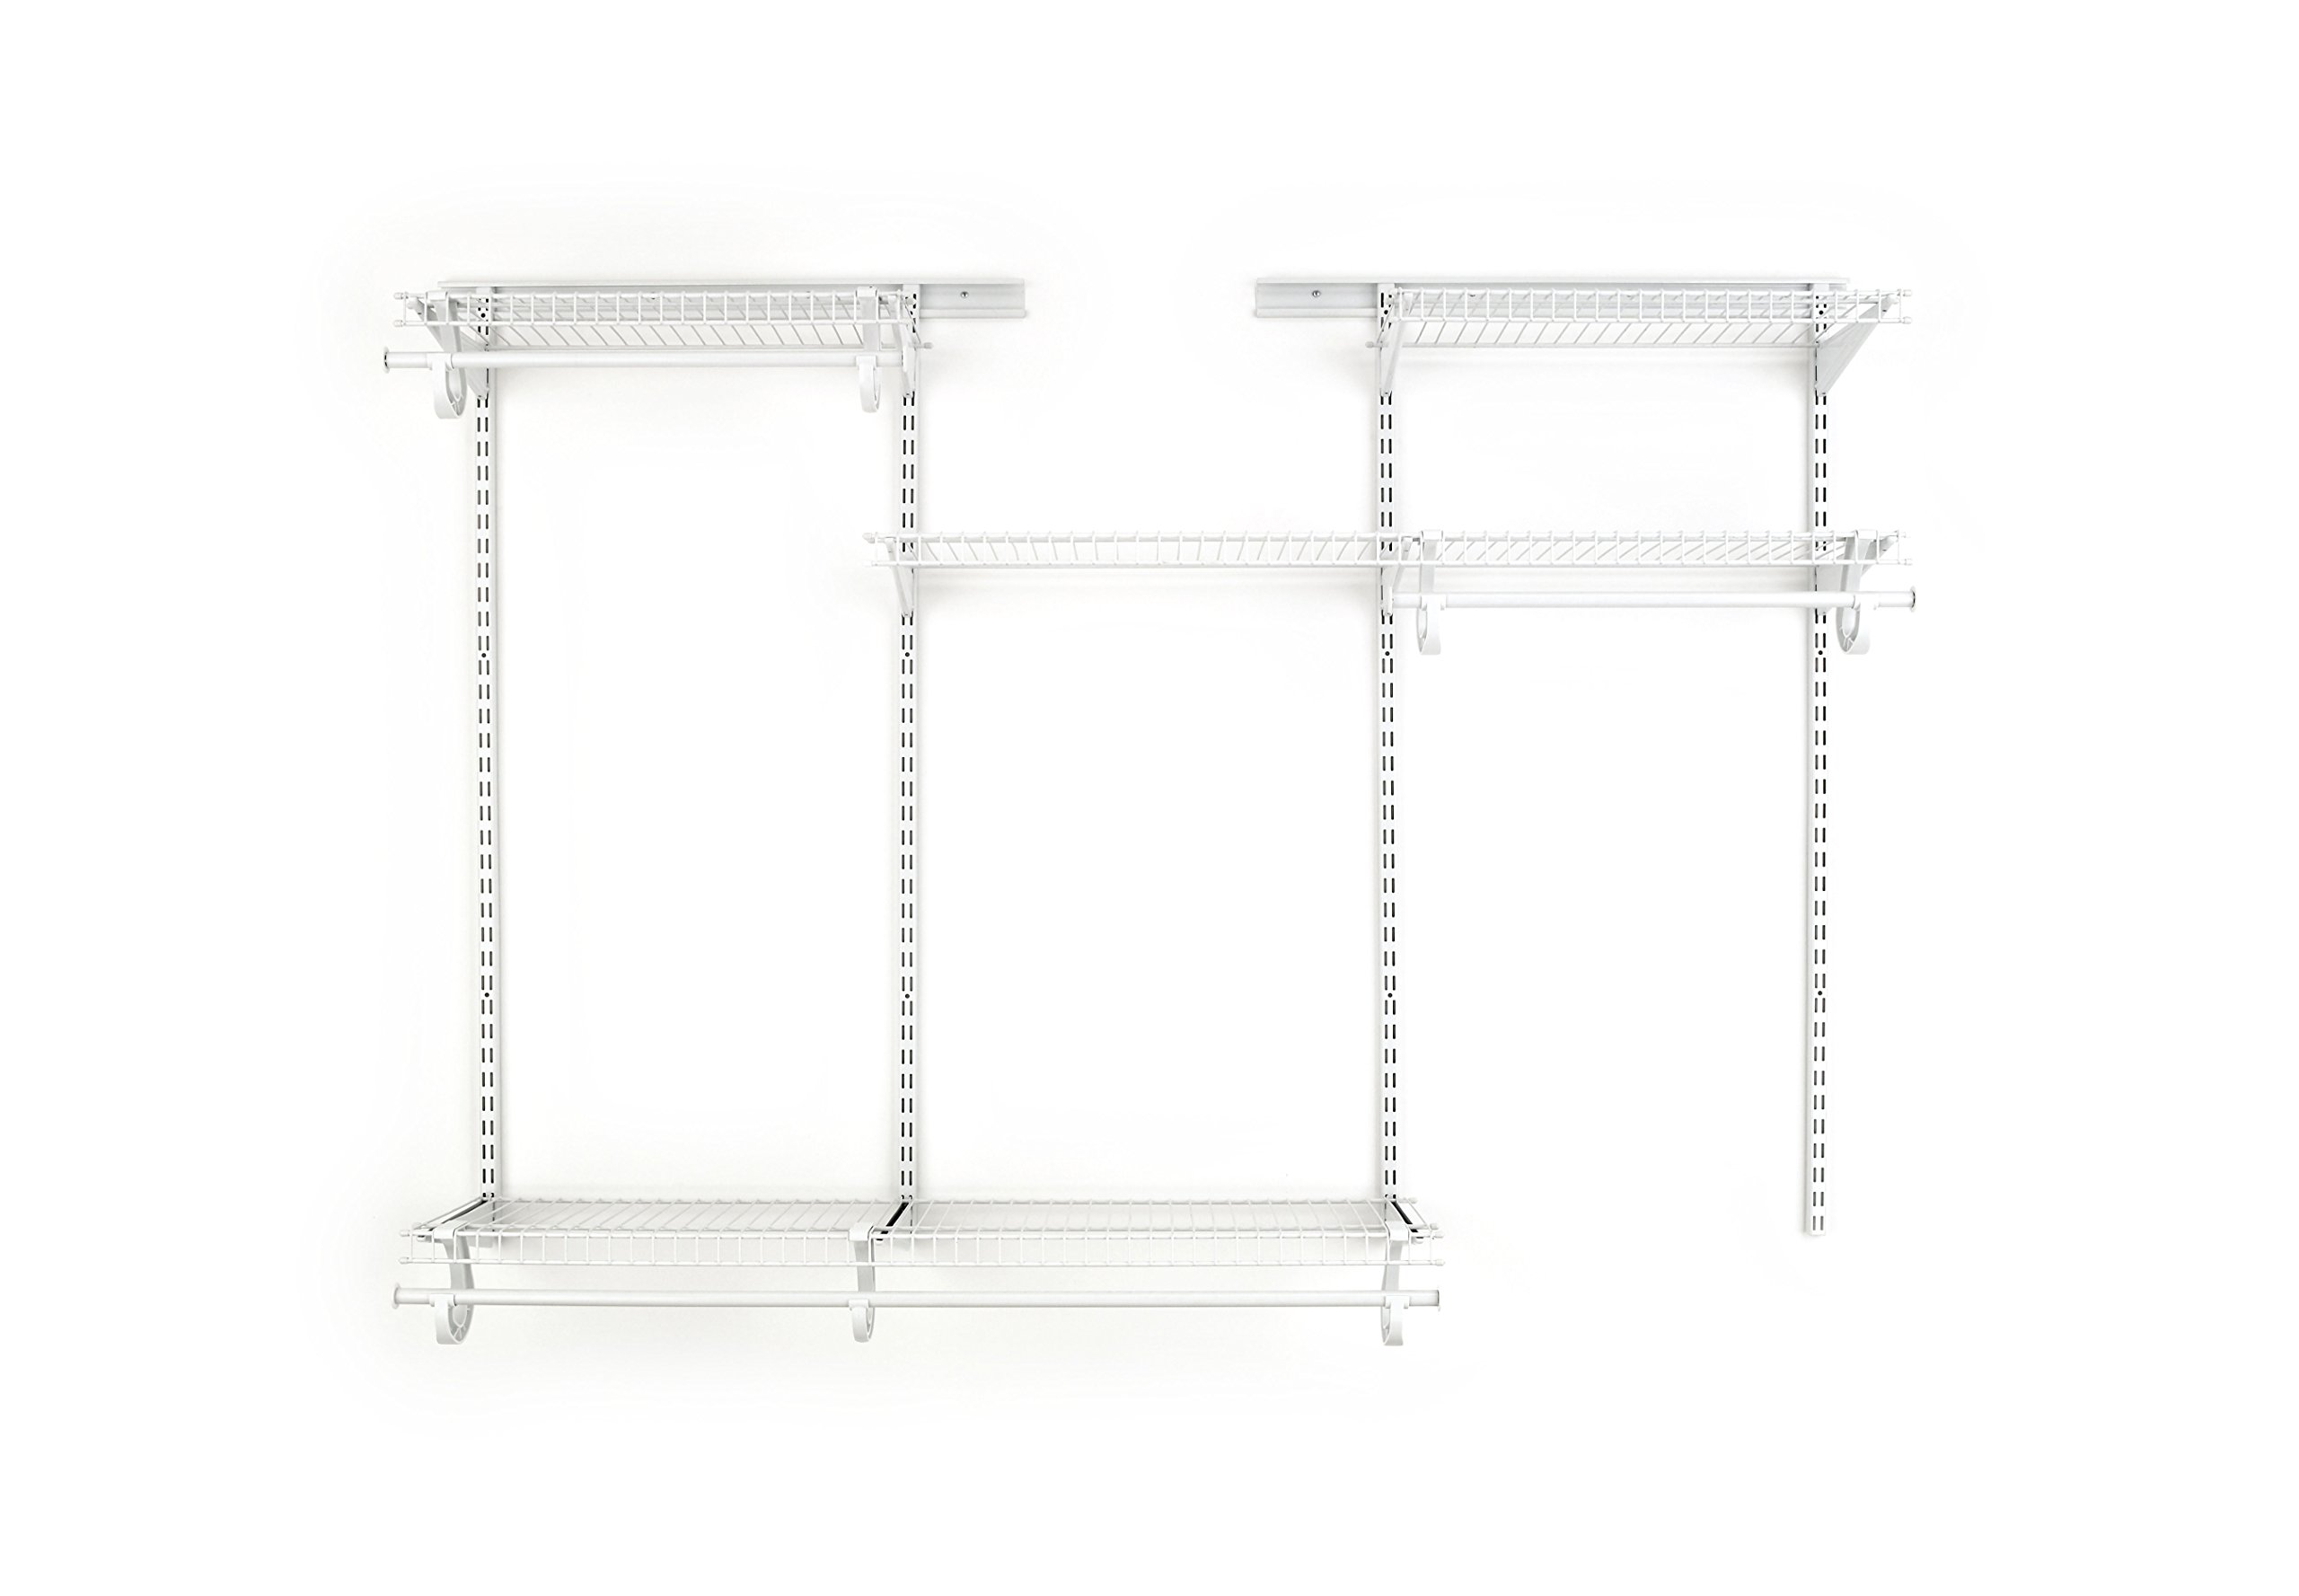 ClosetMaid 8808 ShelfTrack 4ft. to 6ft. Adjustable Closet Organizer Kit, White